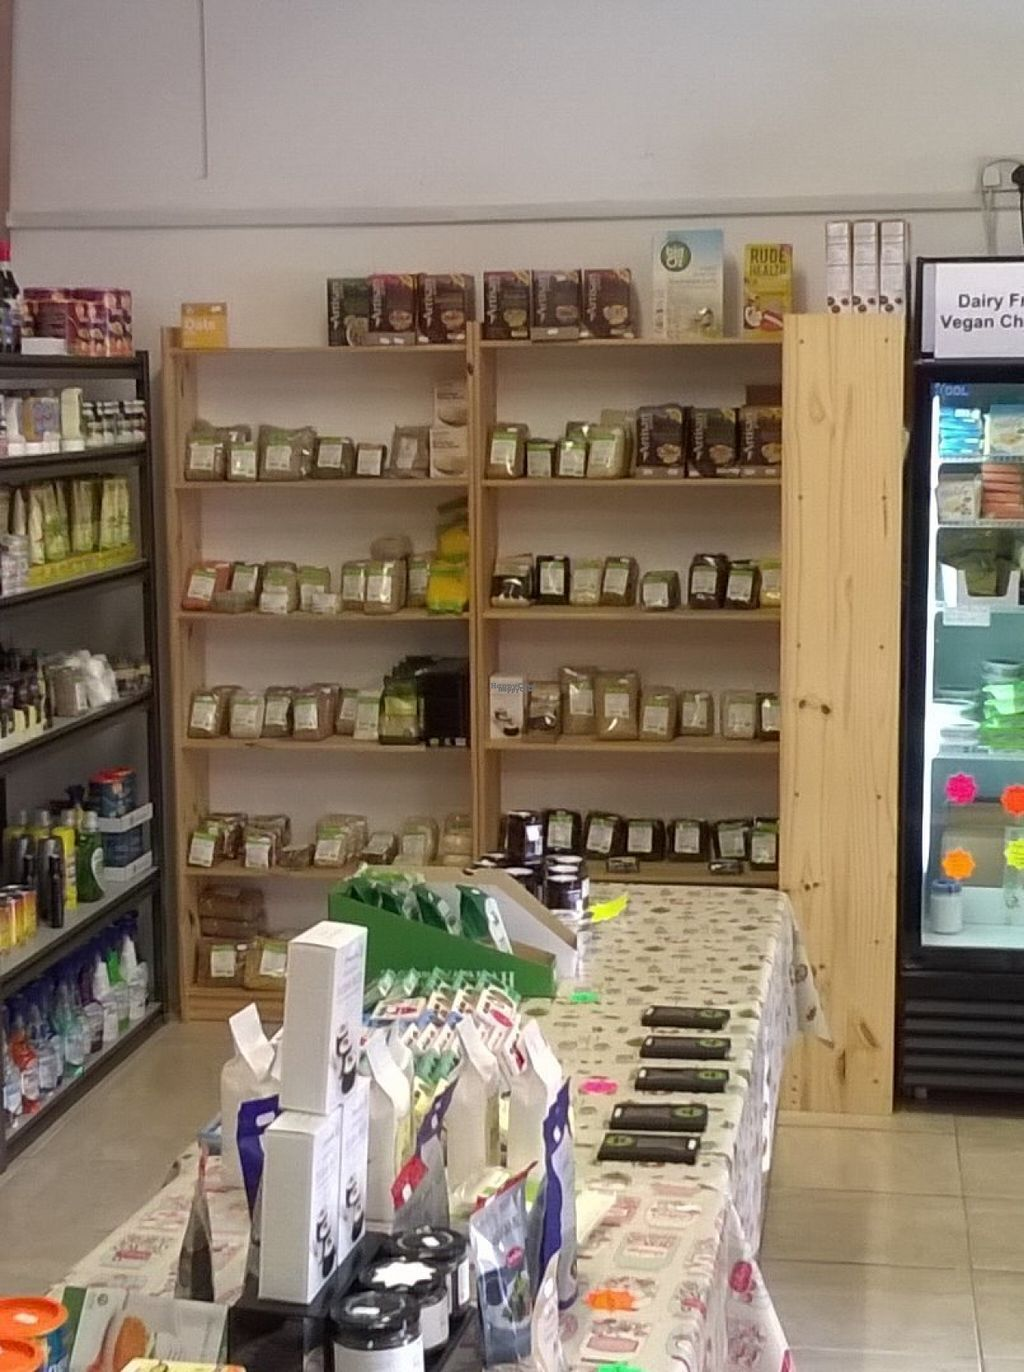 """Photo of Alternative Stores  by <a href=""""/members/profile/deadpledge"""">deadpledge</a> <br/>Wholefoods <br/> August 15, 2016  - <a href='/contact/abuse/image/15169/168896'>Report</a>"""